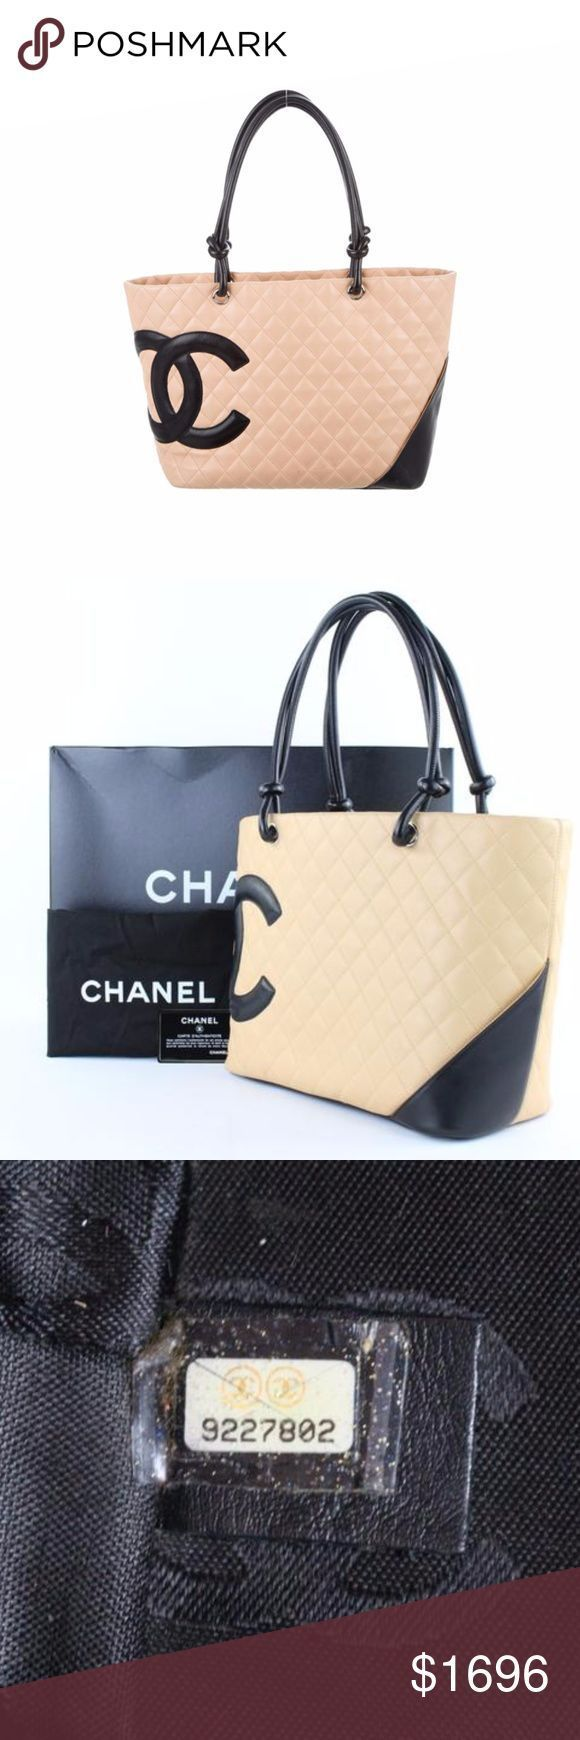 Tendance salopette 2017  Quilted Cambon Ligne Cc 221506 Beige X Black Tote OVERALL EXCELLENT CONDITION (